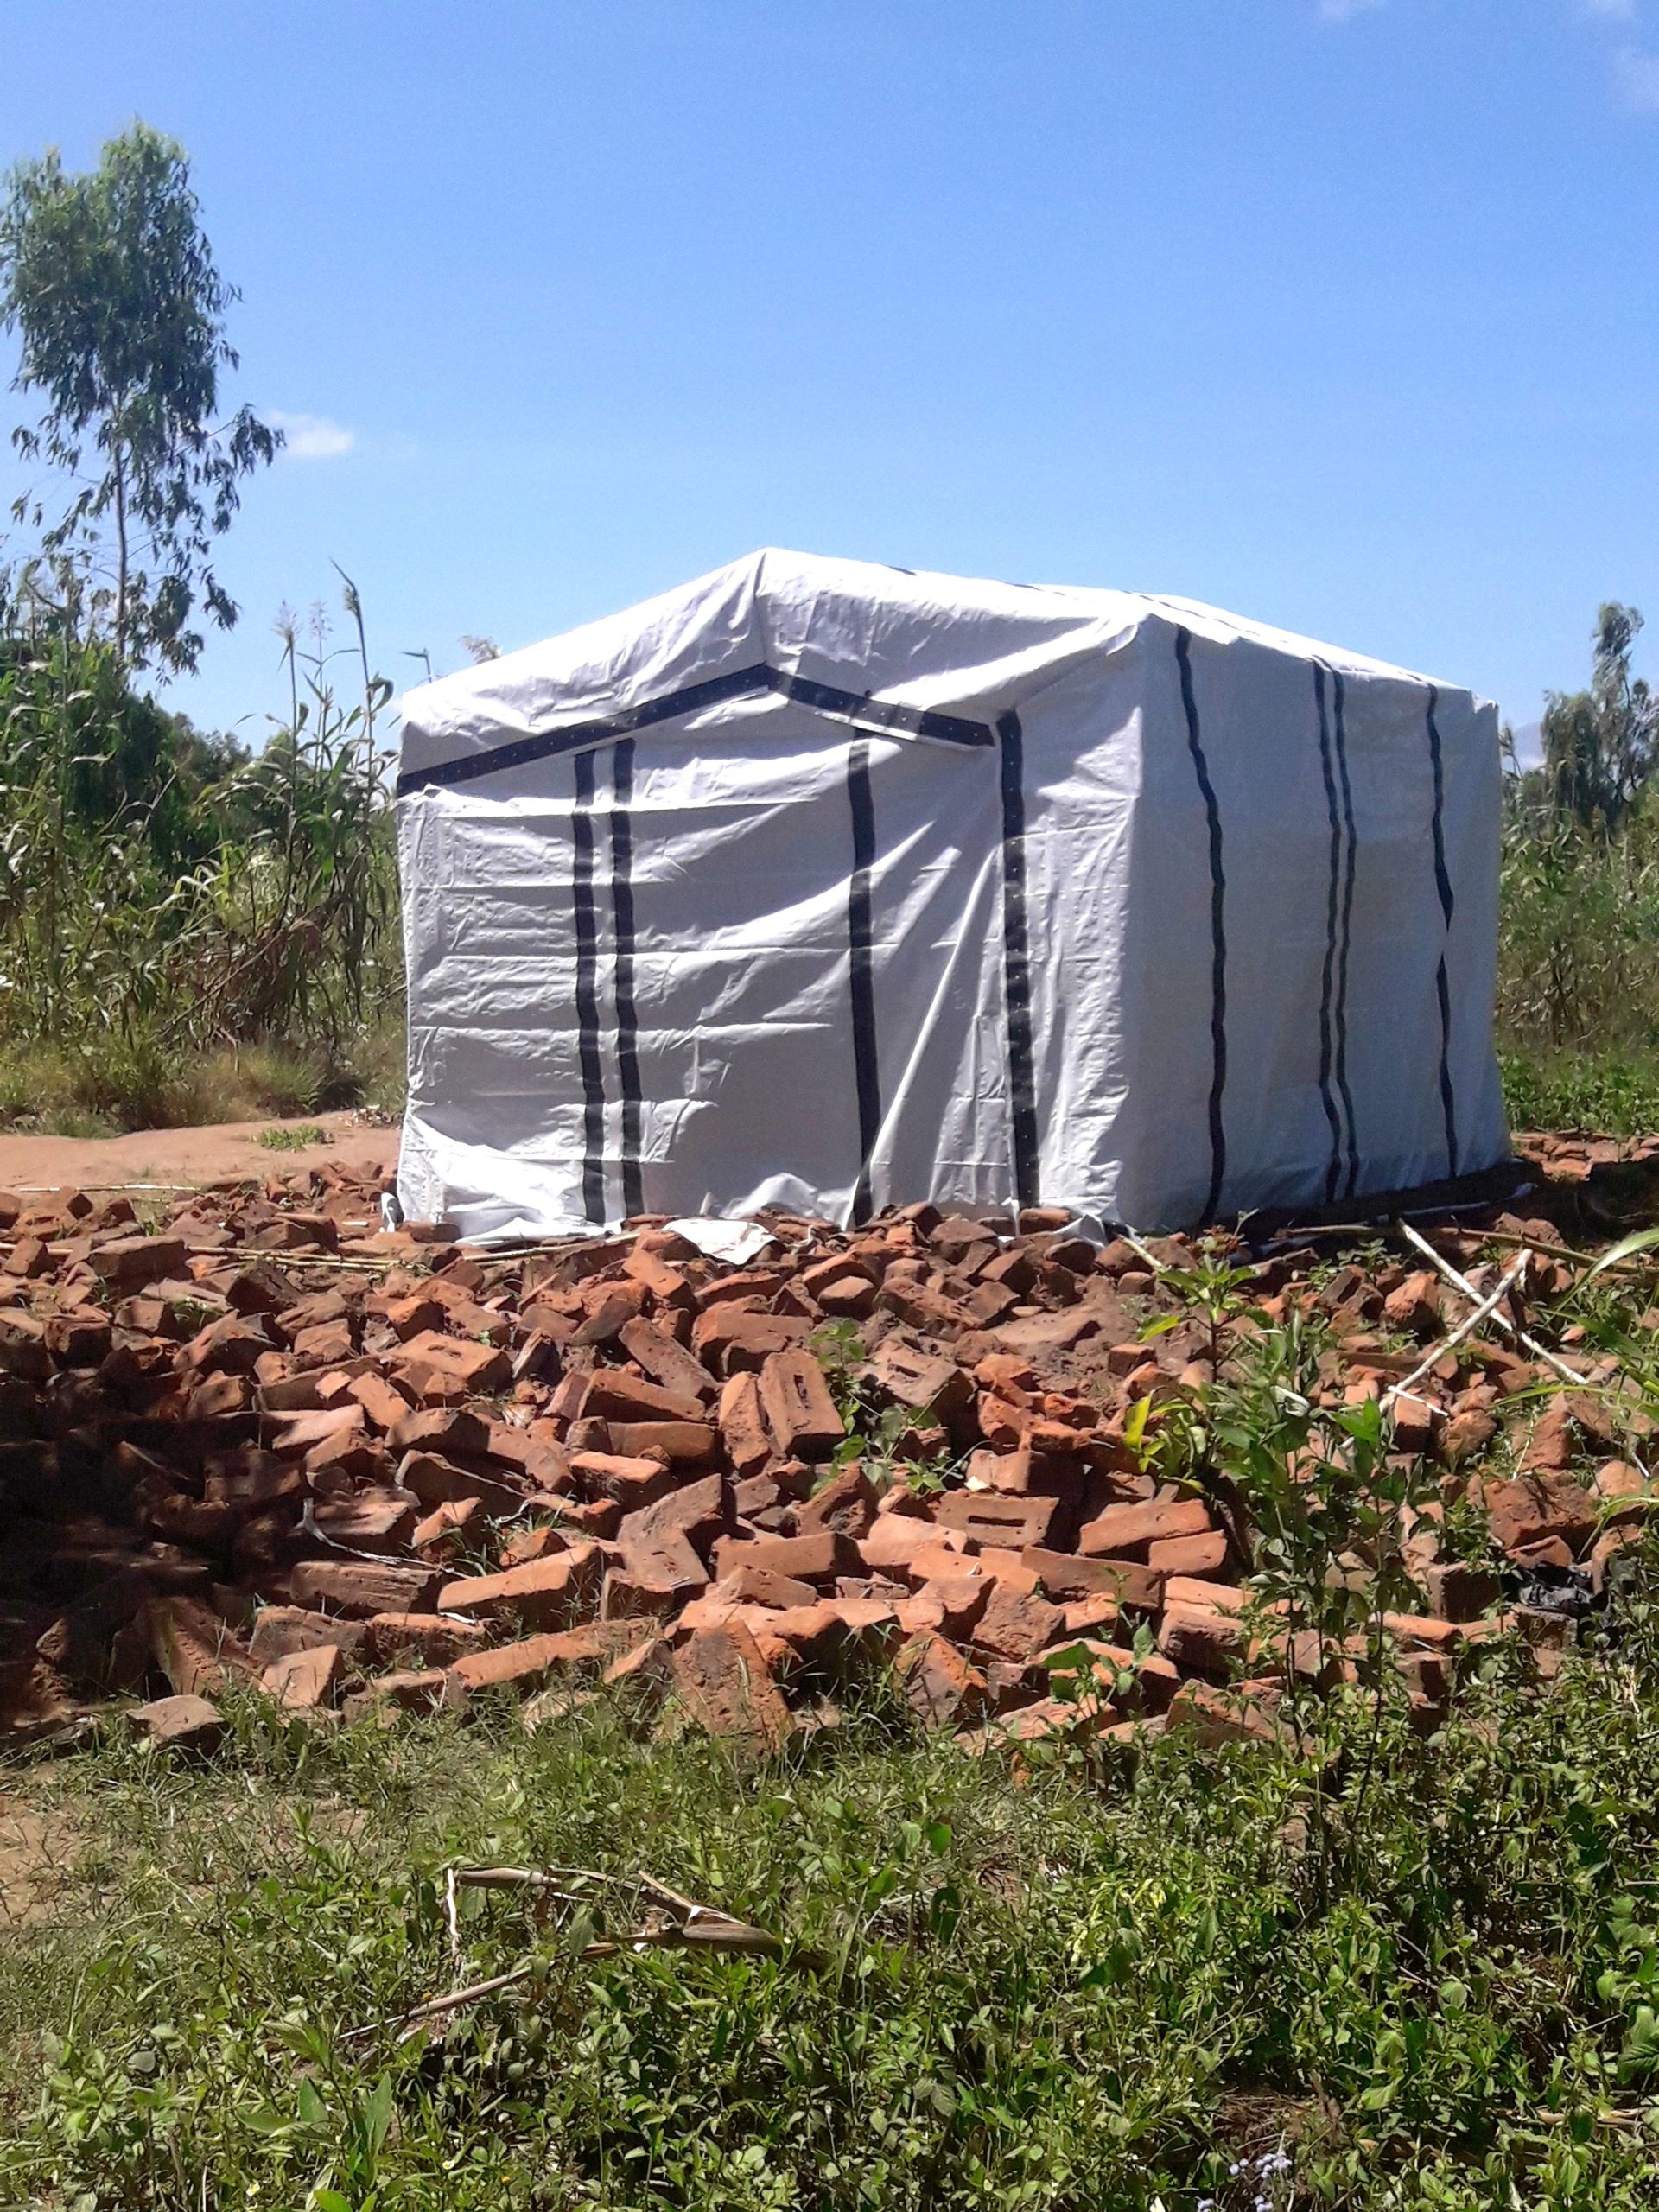 a shelter structure made from ShelterKit materials stands in front of a pile of bricks